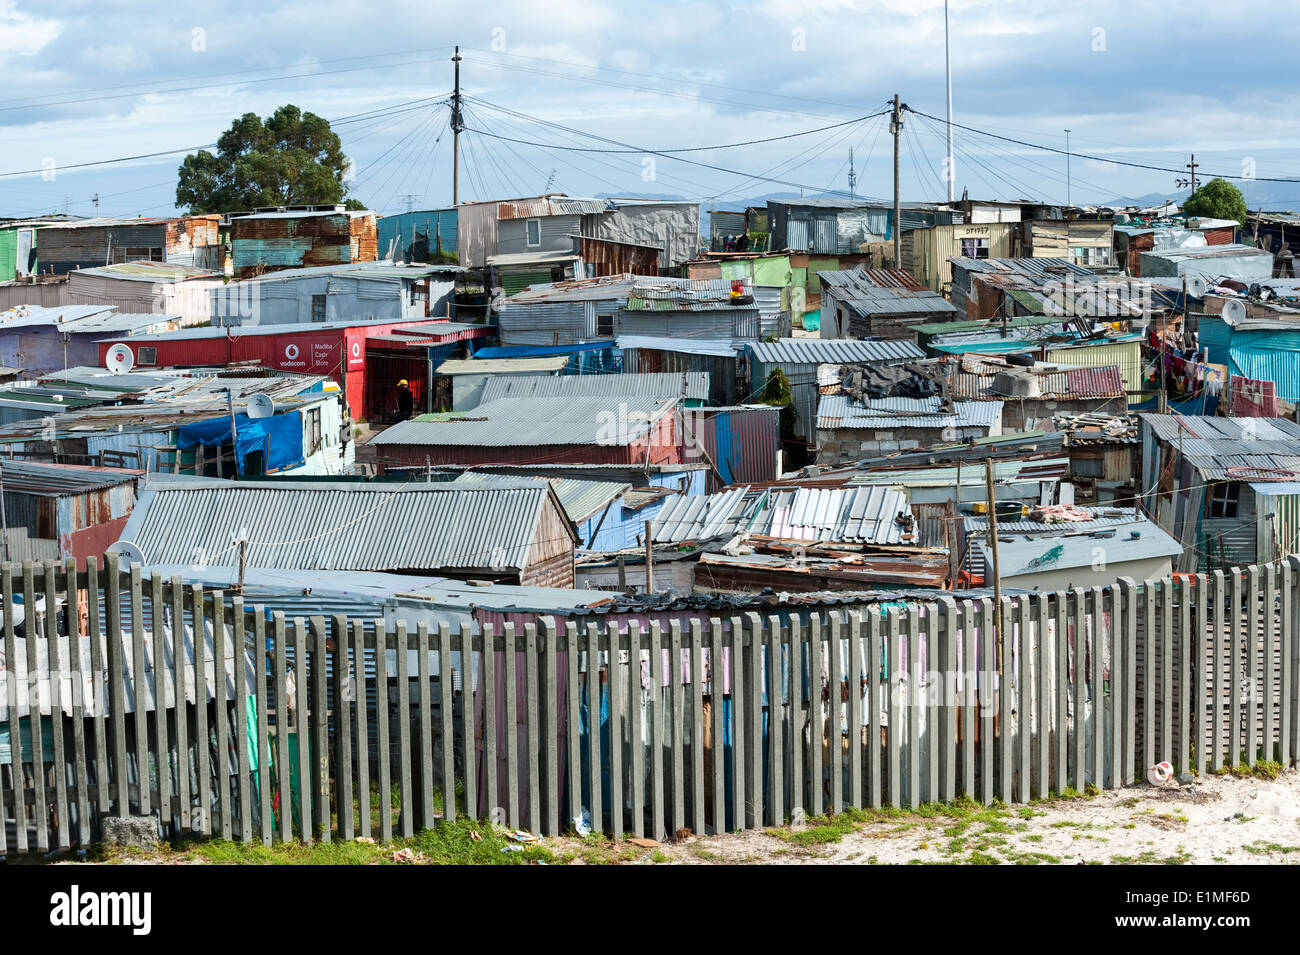 Corrugated iron sheds behind a fence in Khayelitsha, Cape Town, South Africa - Stock Image